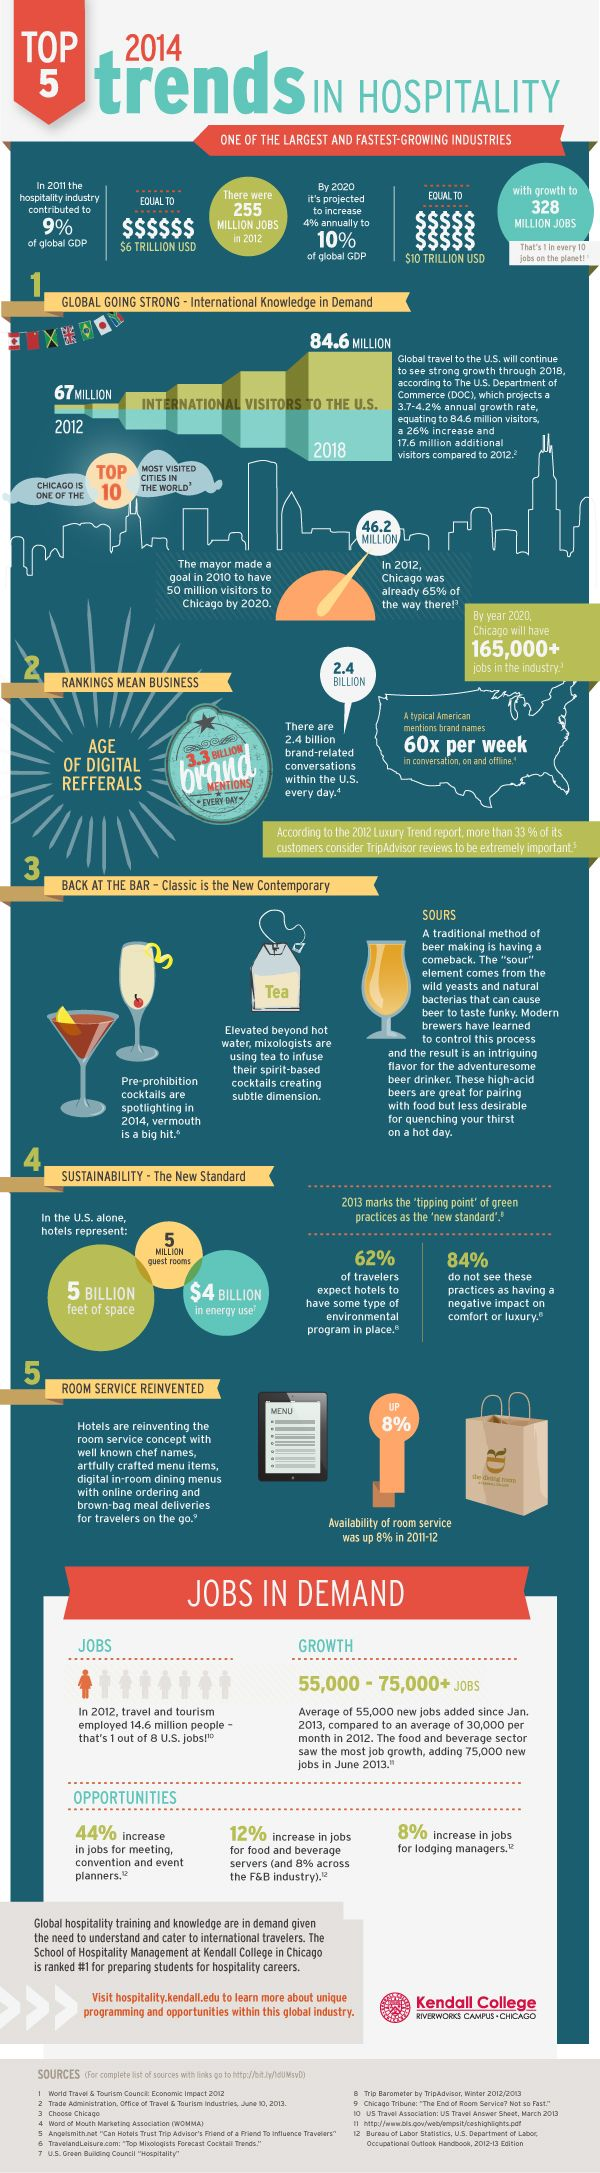 Top 5 2014 Trends in Hospitality